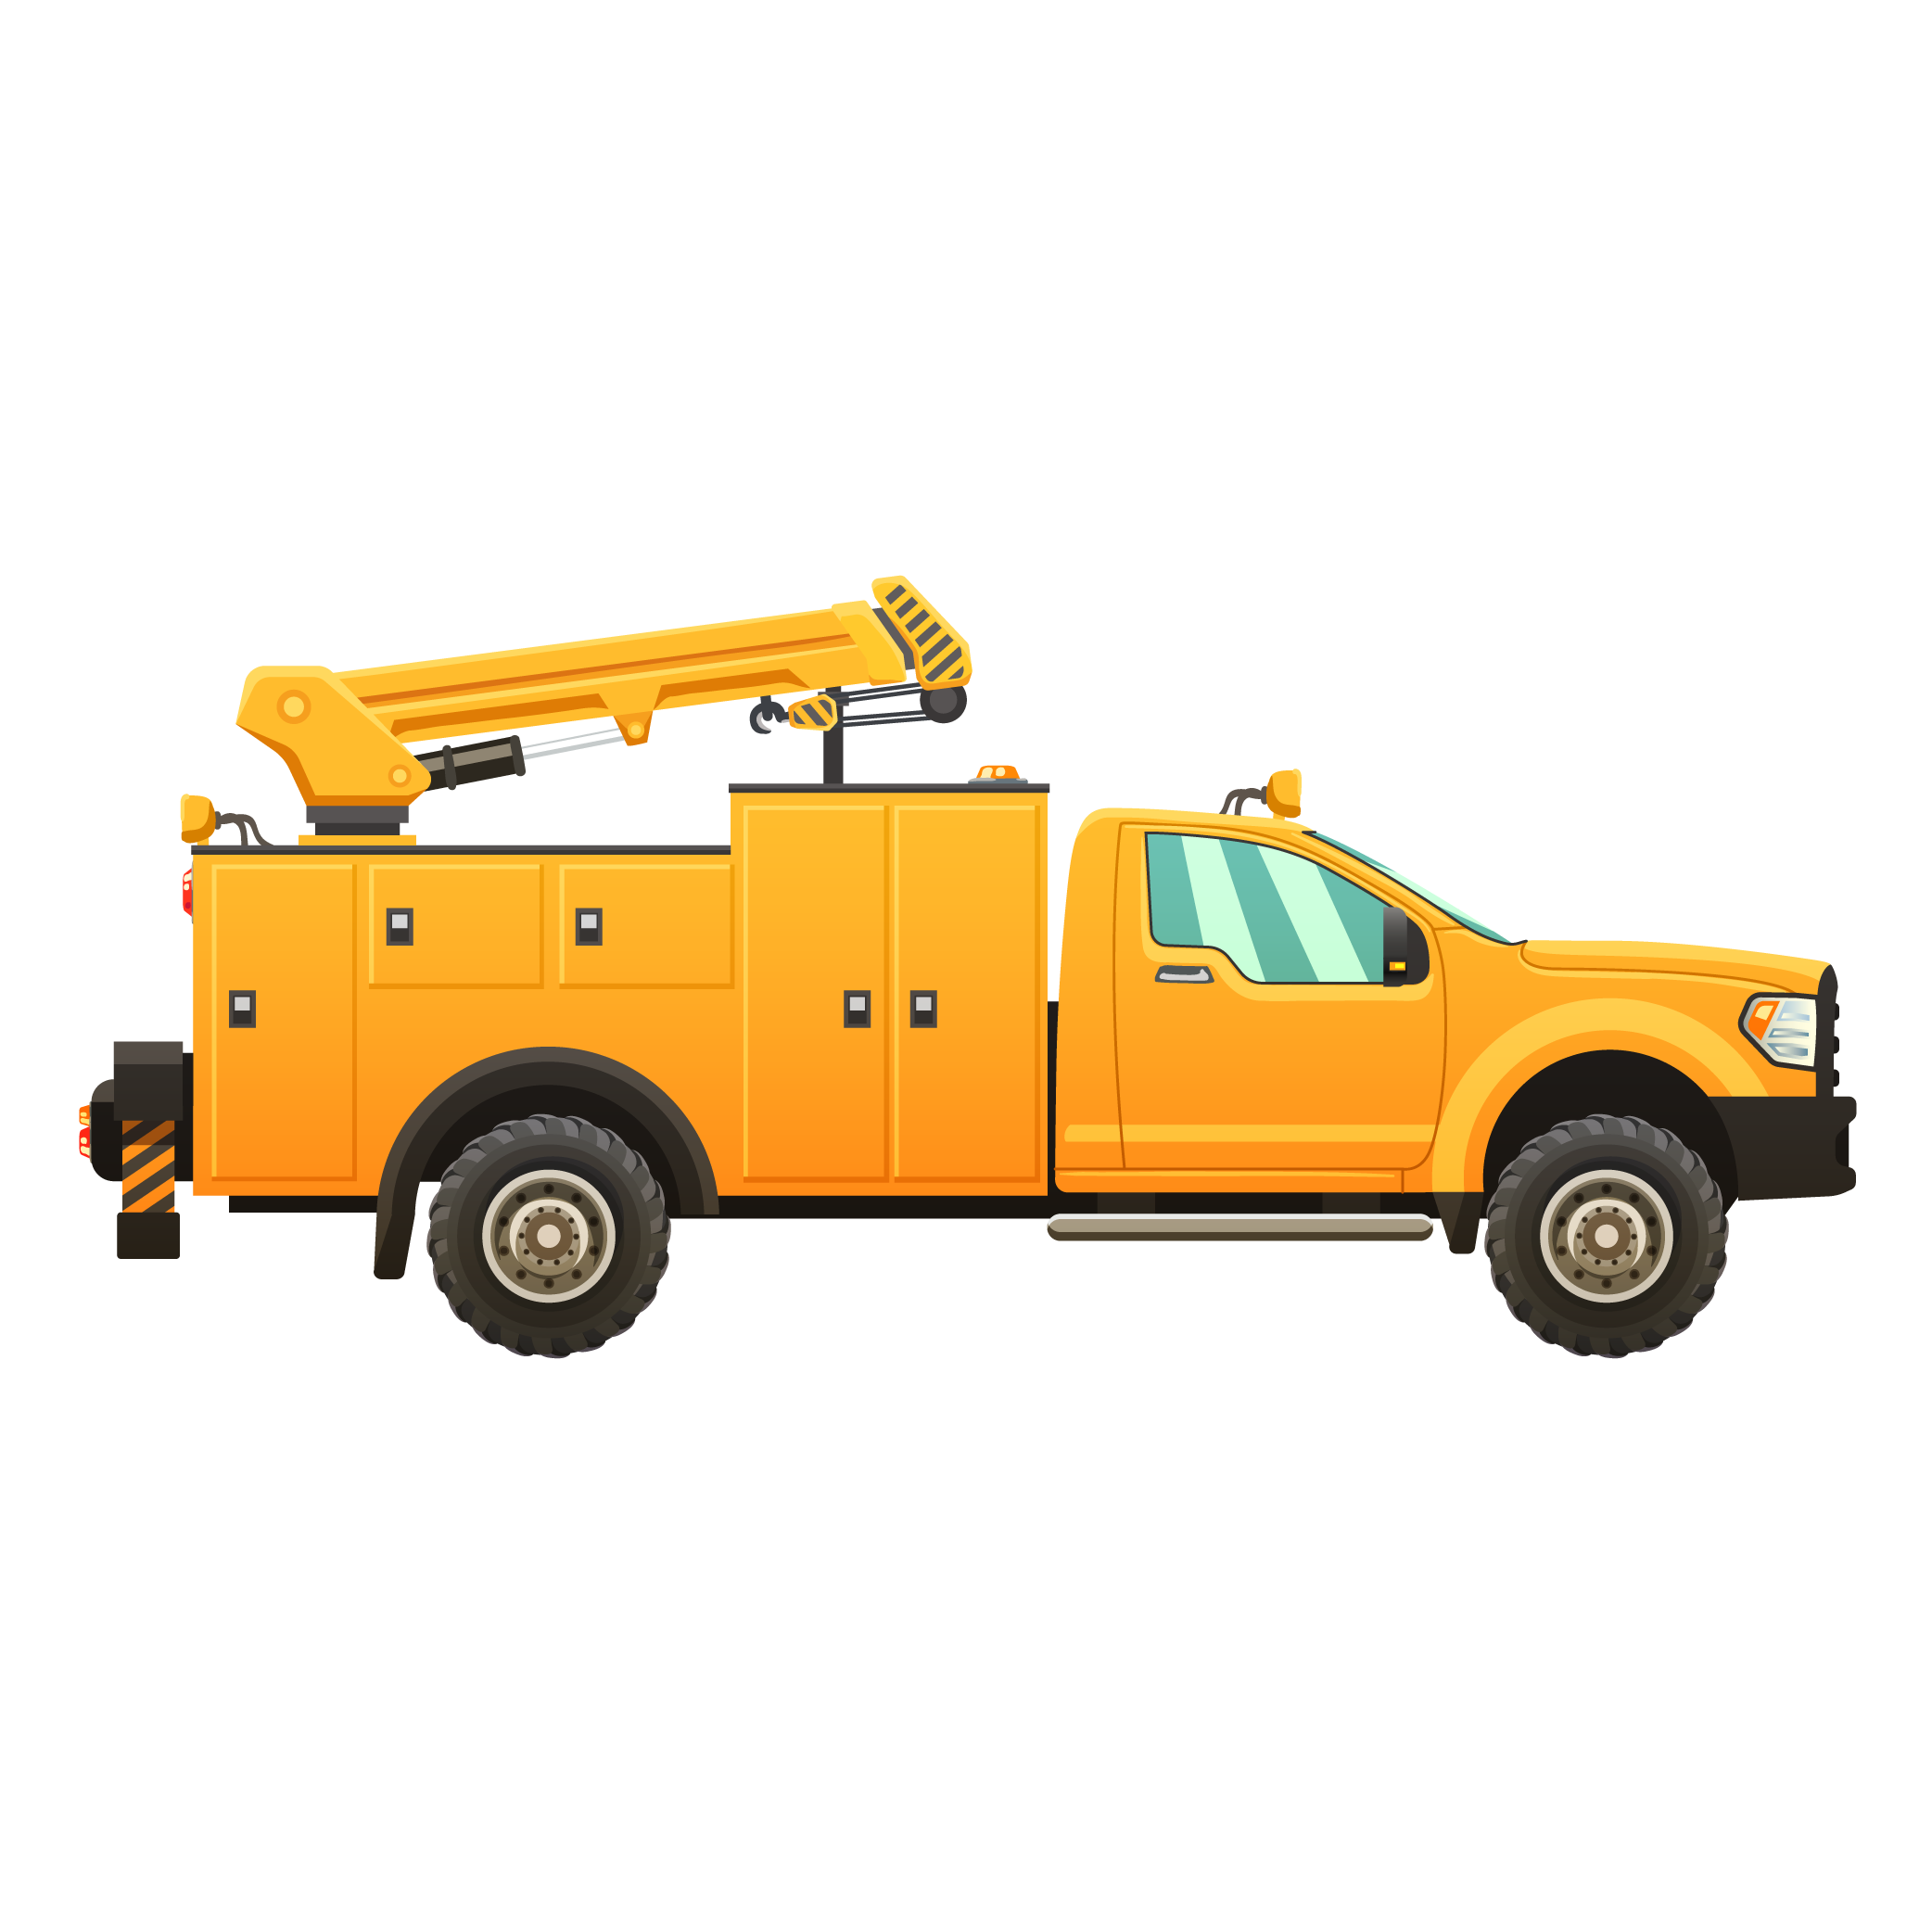 Yellow Service Truck with Boom Arm